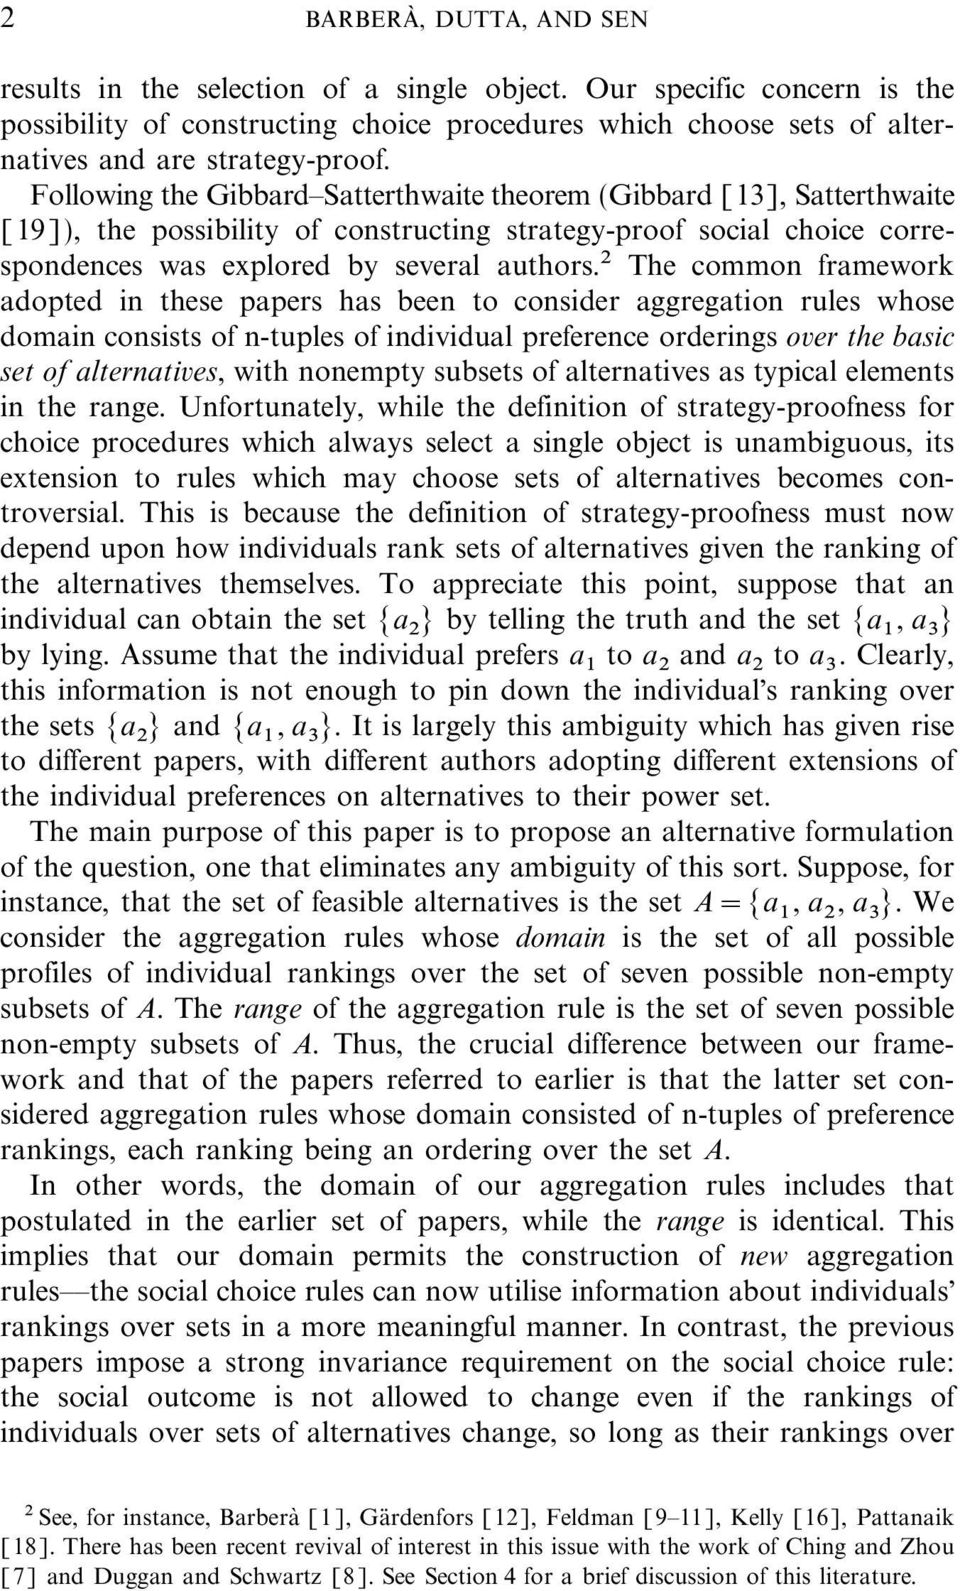 Following the GibbardSatterthwaite theorem (Gibbard [13], Satterthwaite [19]), the possibility of constructing strategy-proof social choice correspondences was explored by several authors.